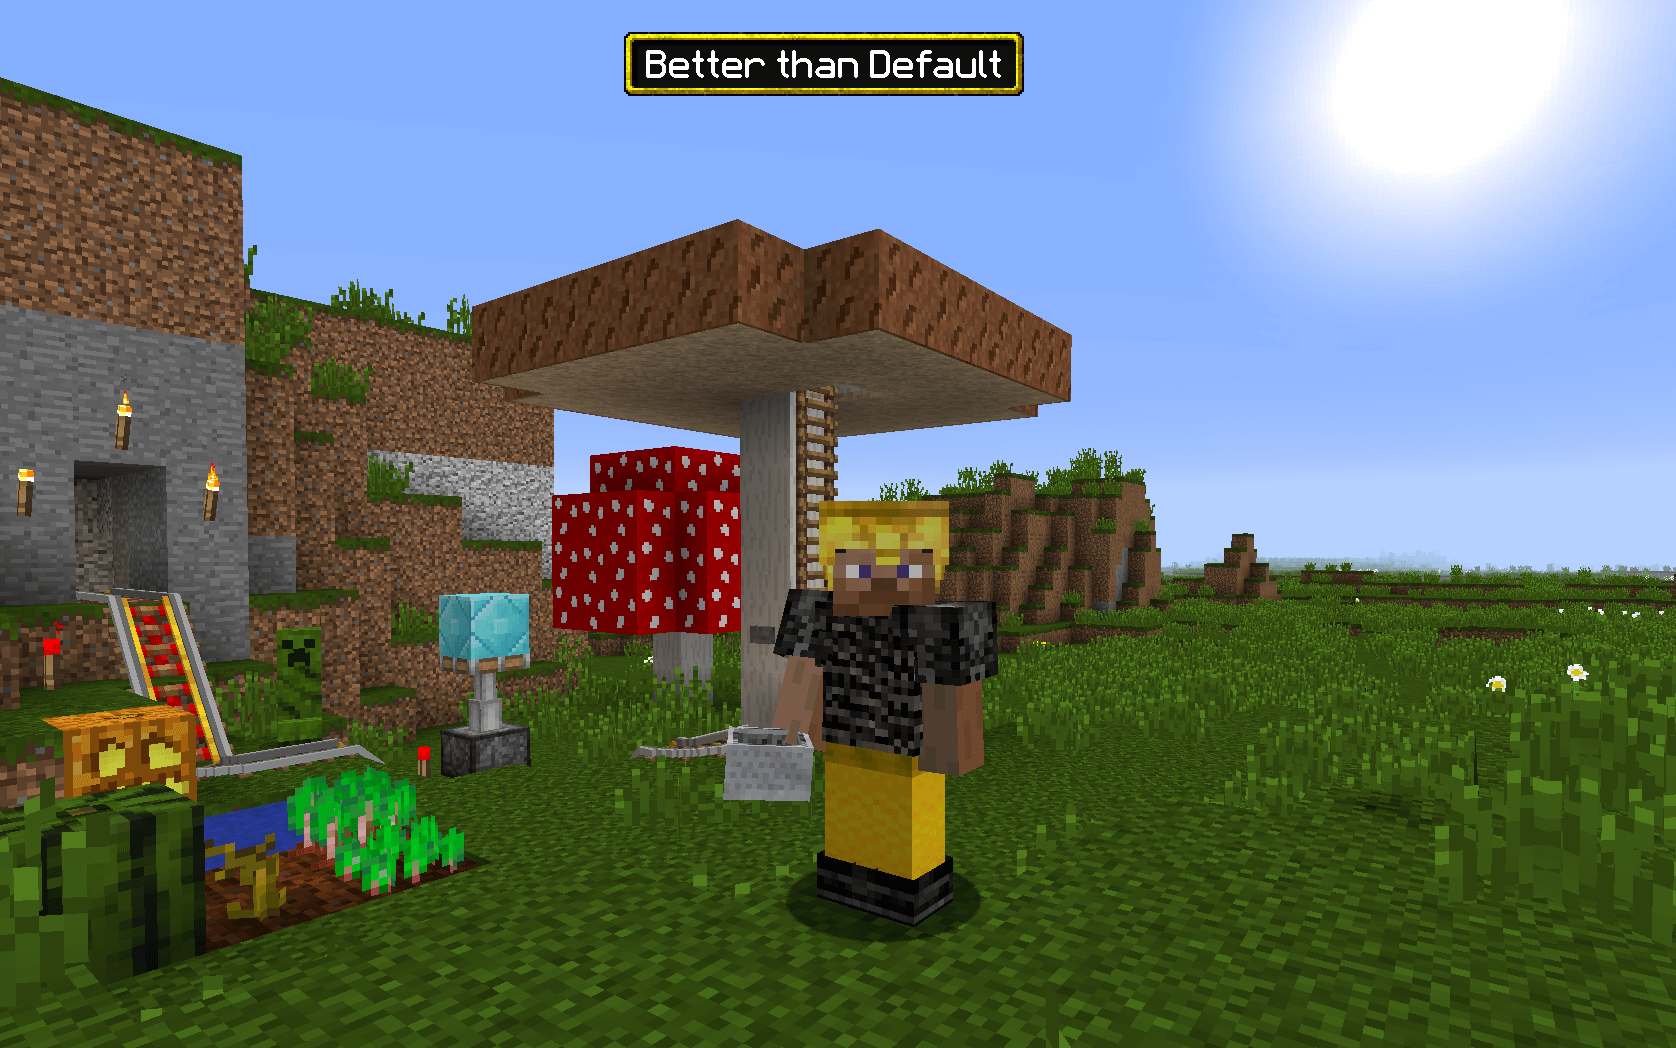 Better Than Default Texture Pack Image 2